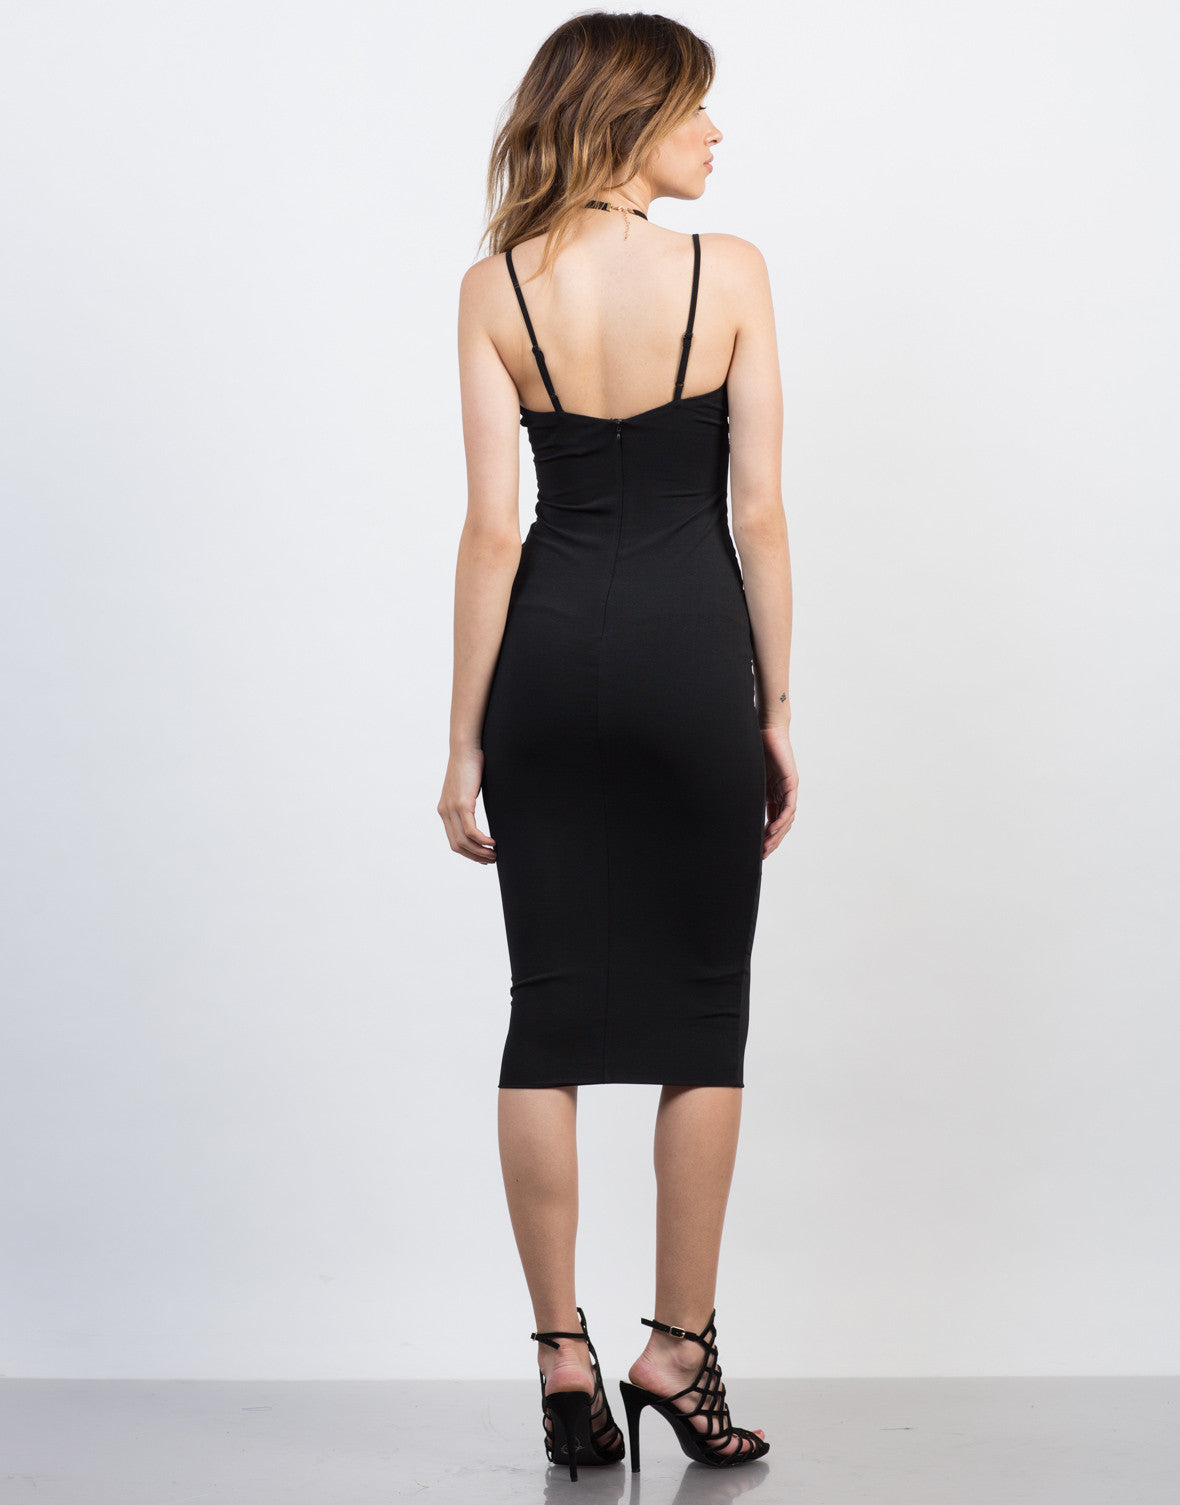 Back View of Midi Black Party Dress